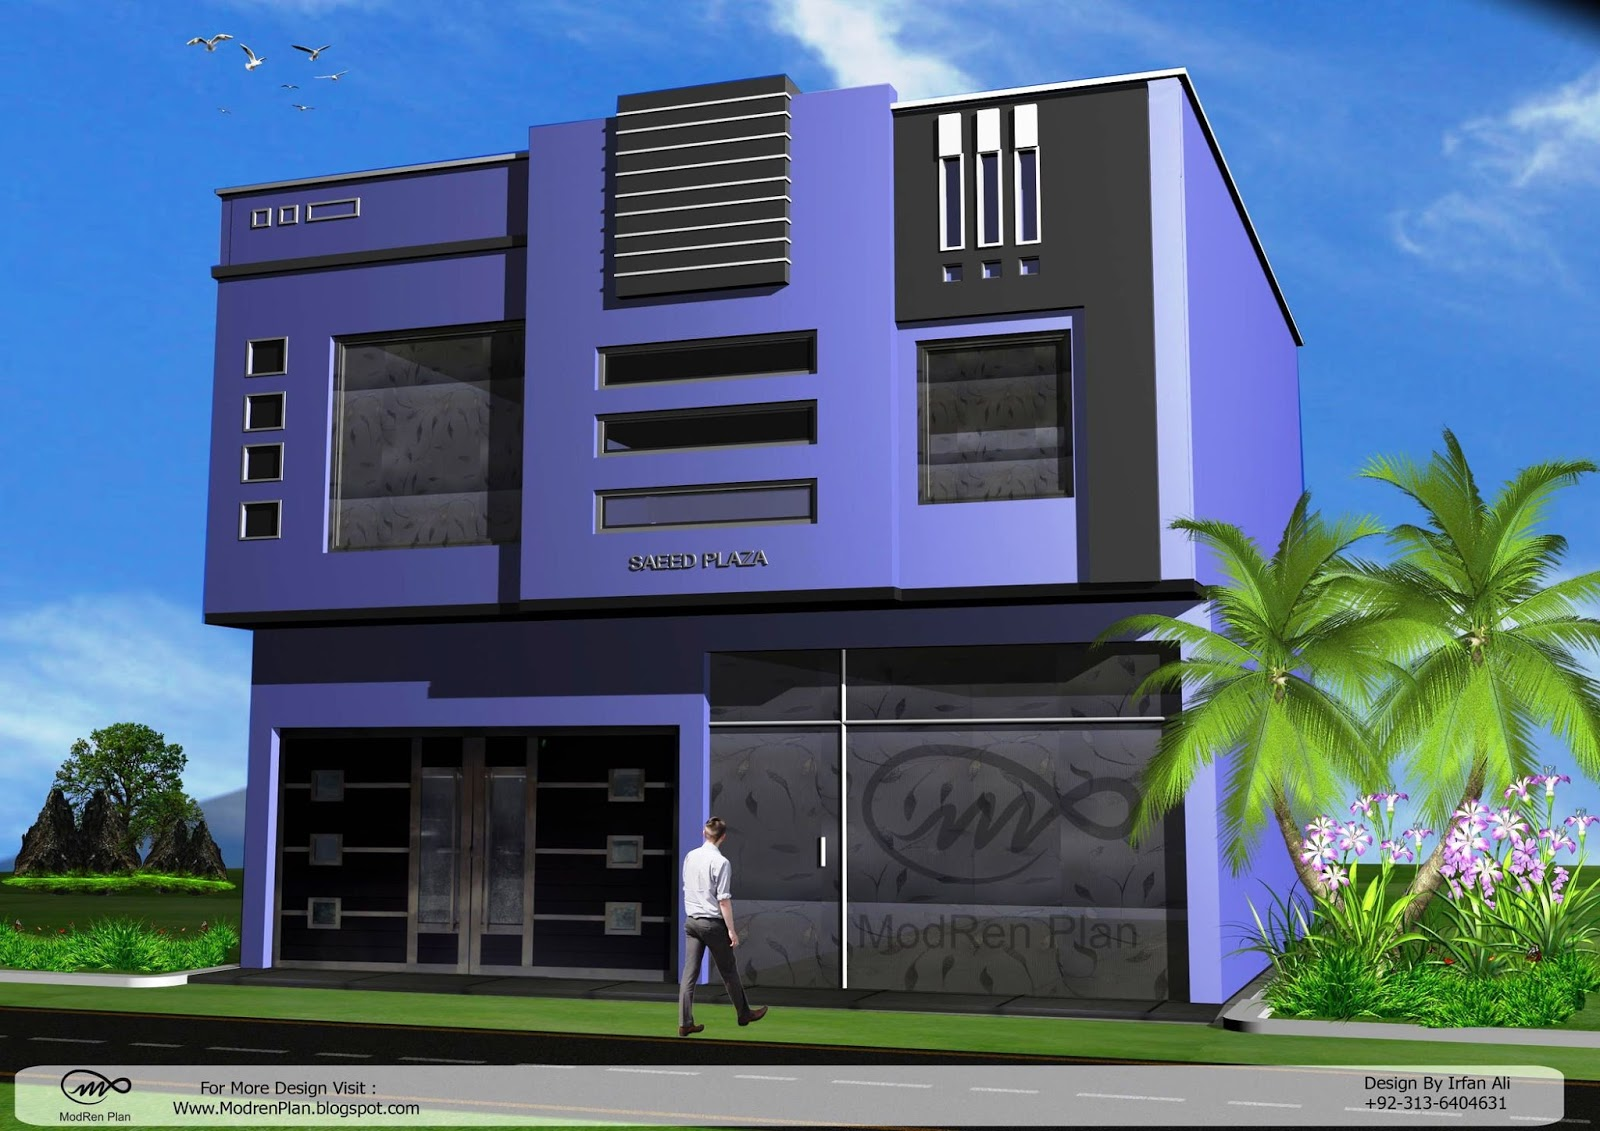 Modern commercial building designs and plaza front elevation for Small commercial building design plans